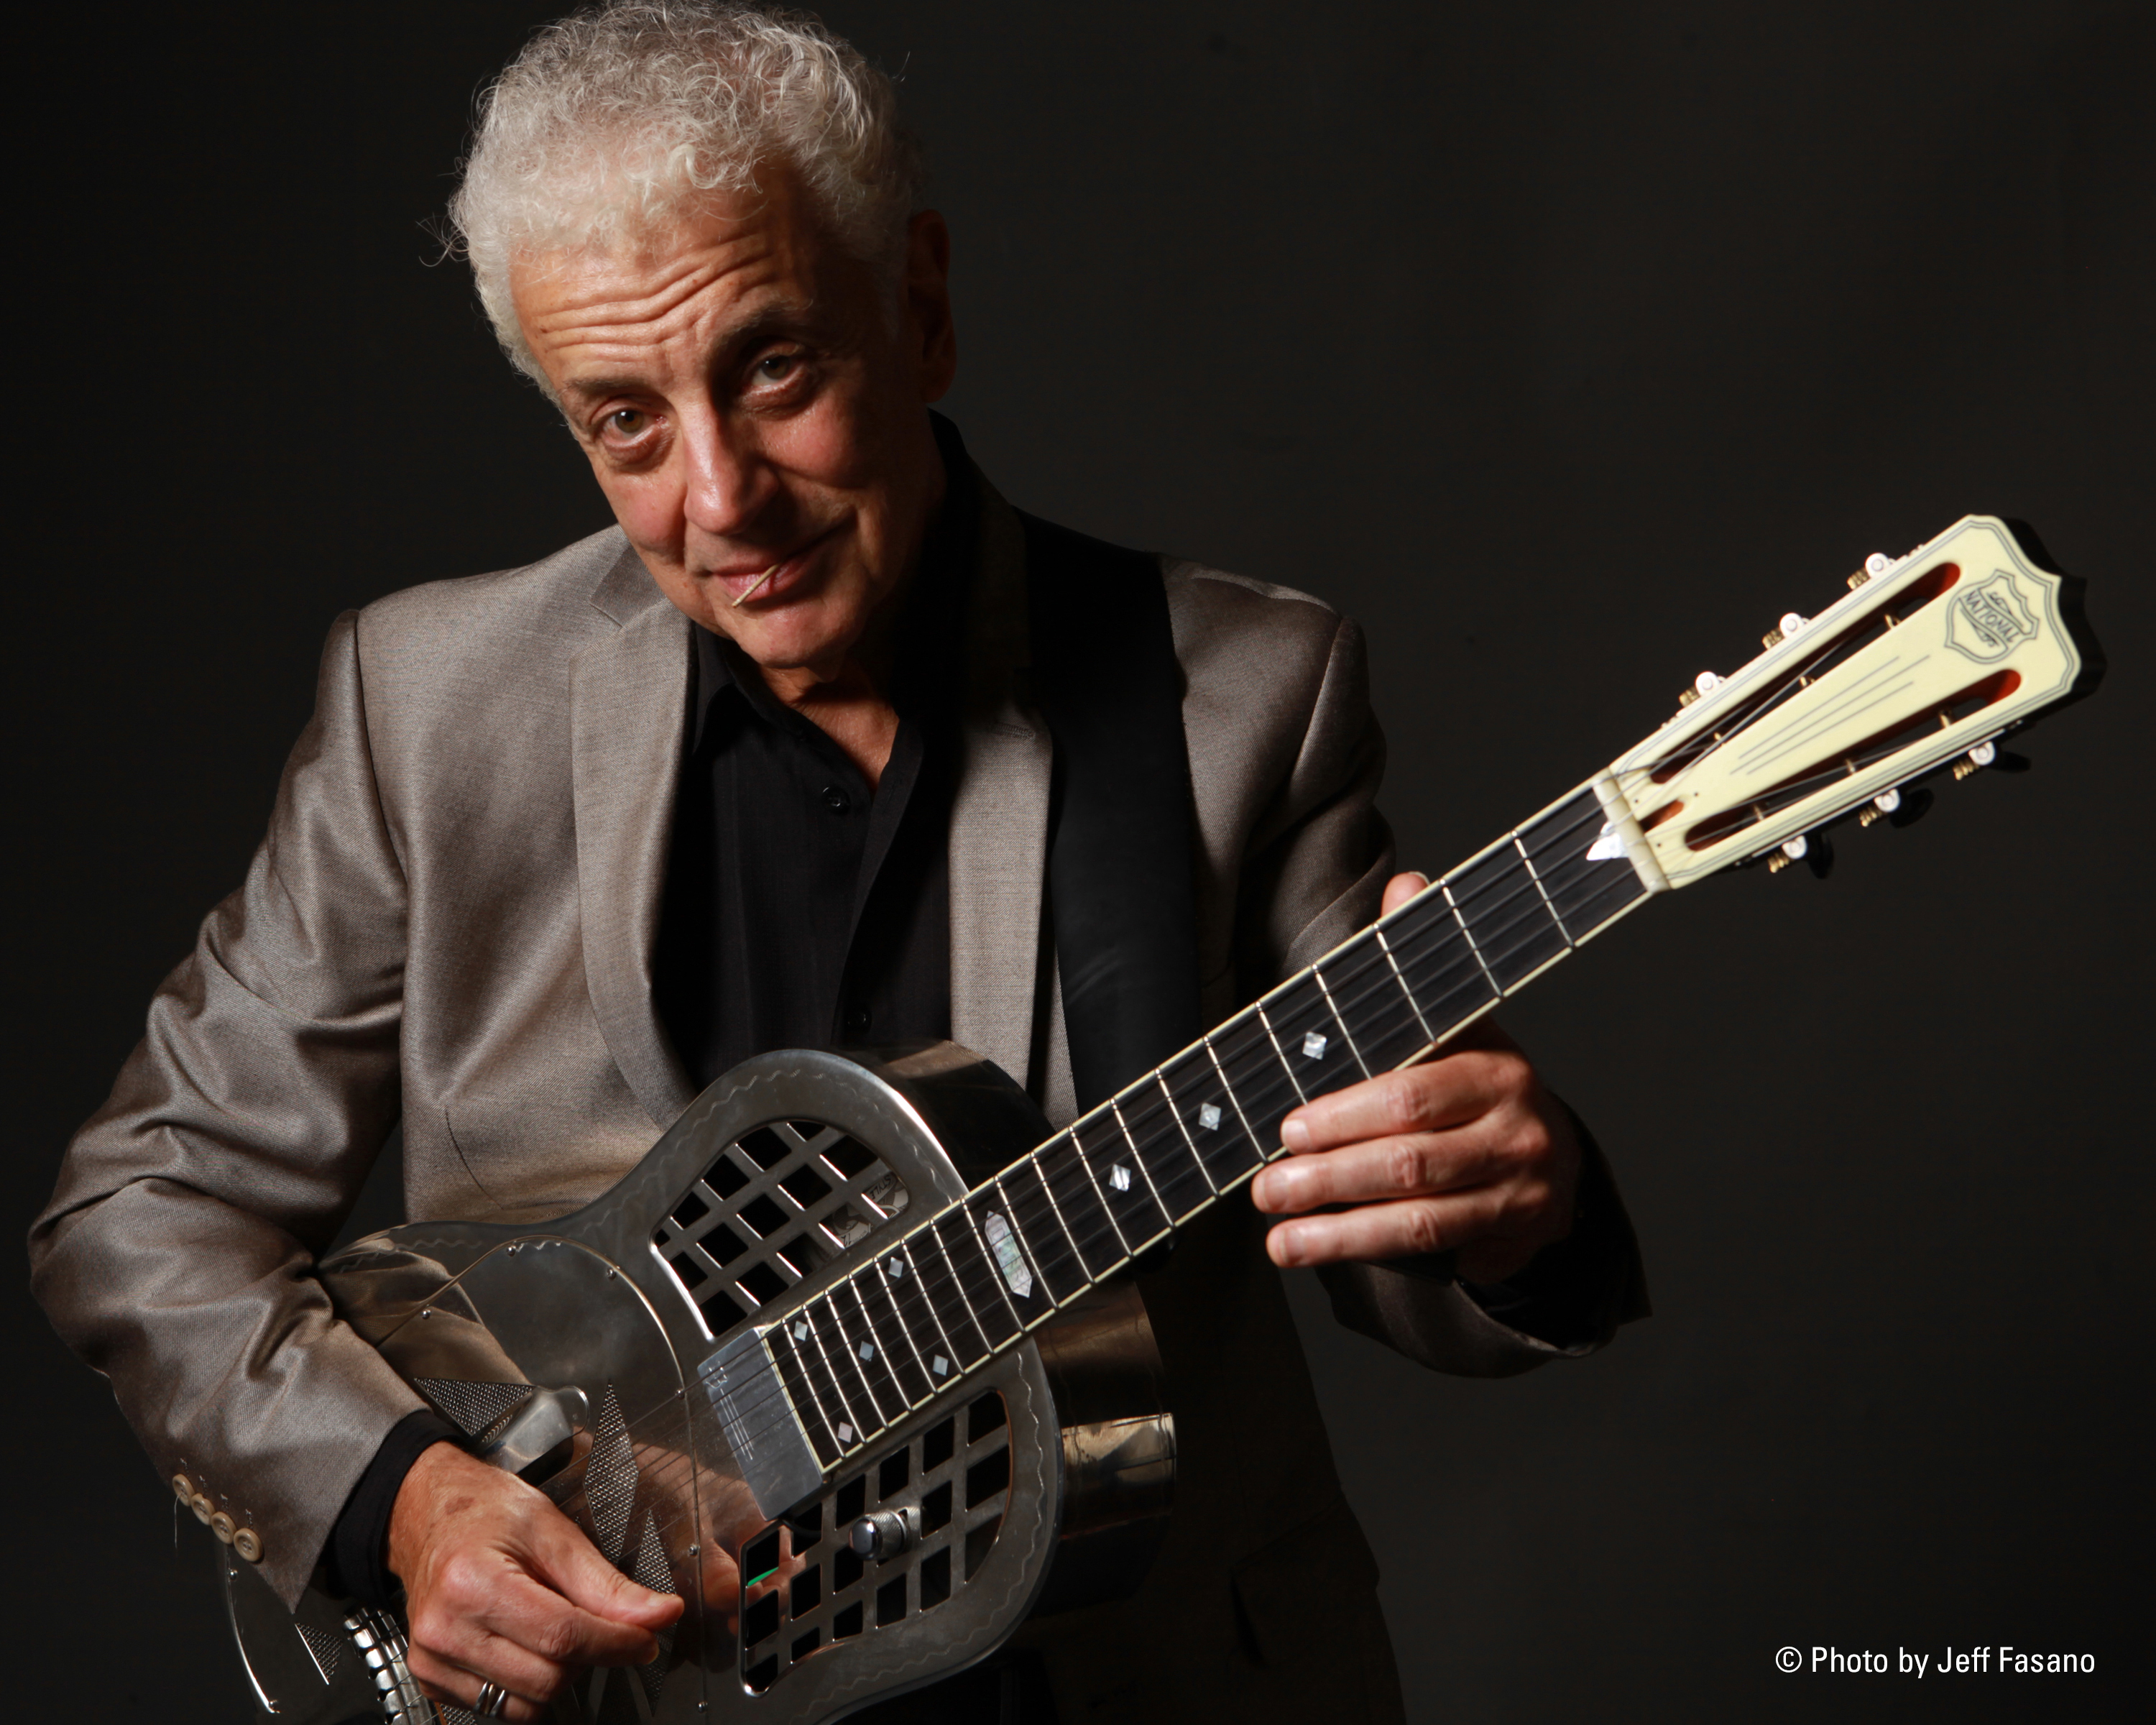 Fiddle & Bow Society Presents: Doug MacLeod